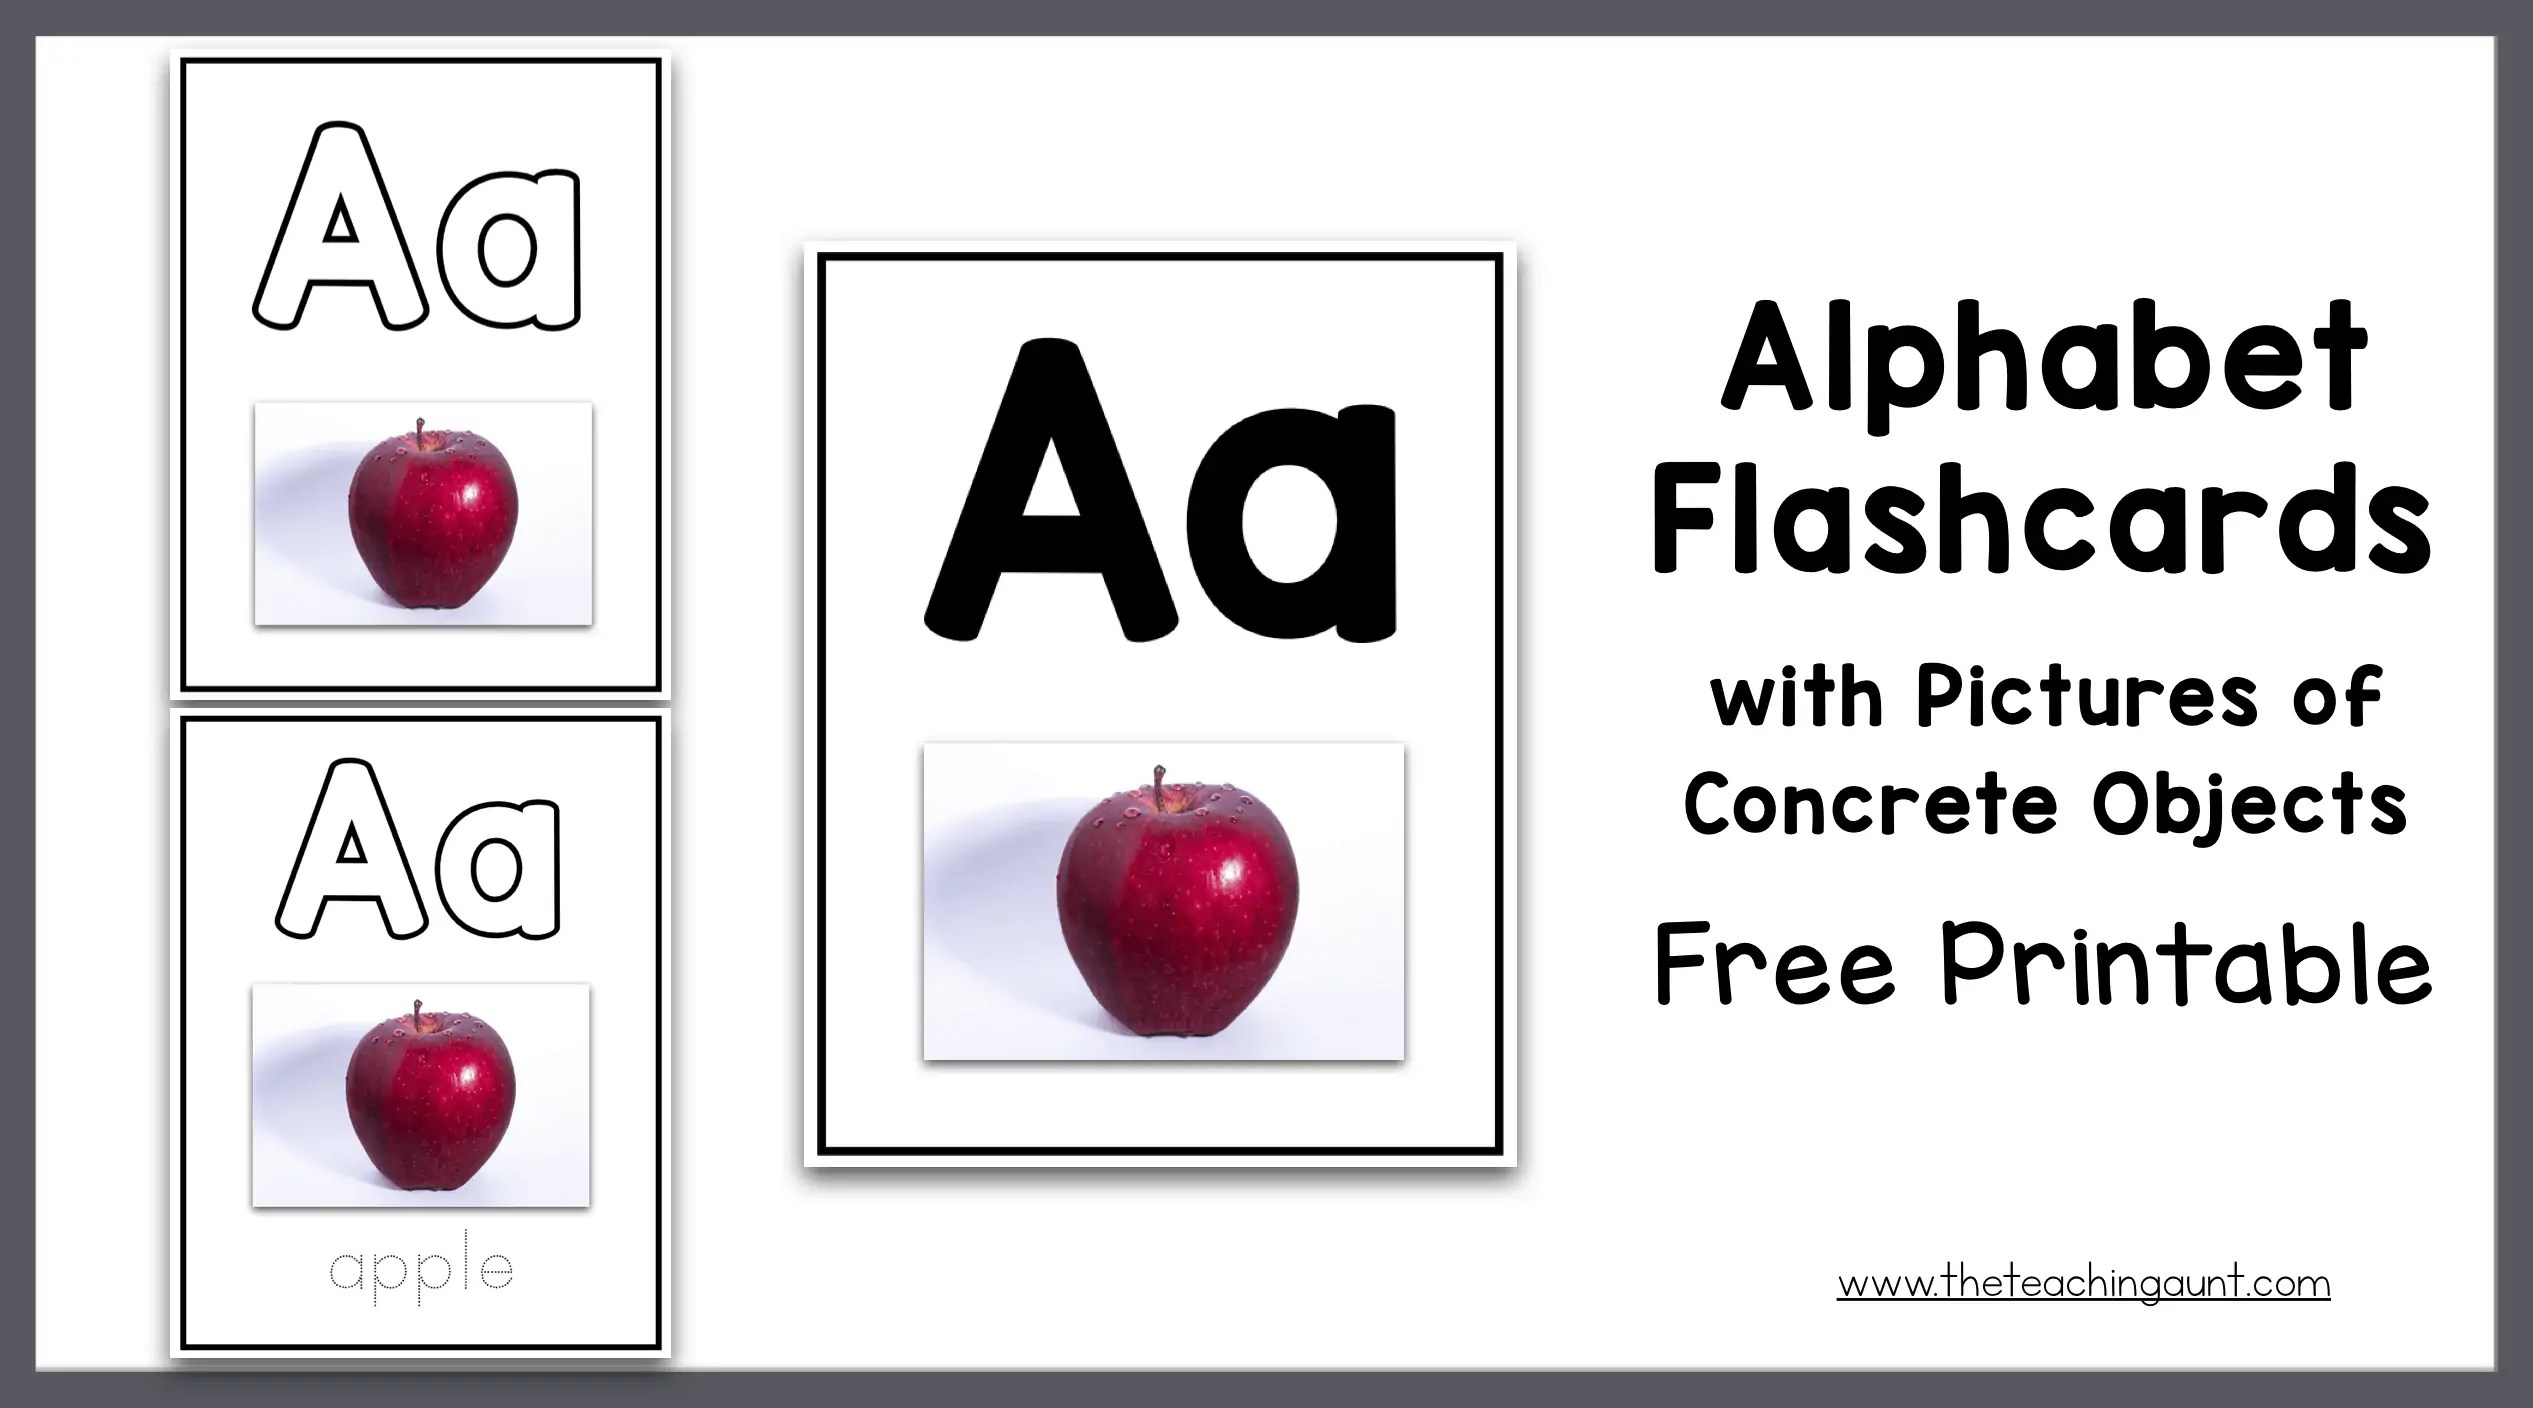 photo relating to Free Printable Abc Flash Cards identify Alphabet Flashcards with Illustrations or photos of Concrete Things - The